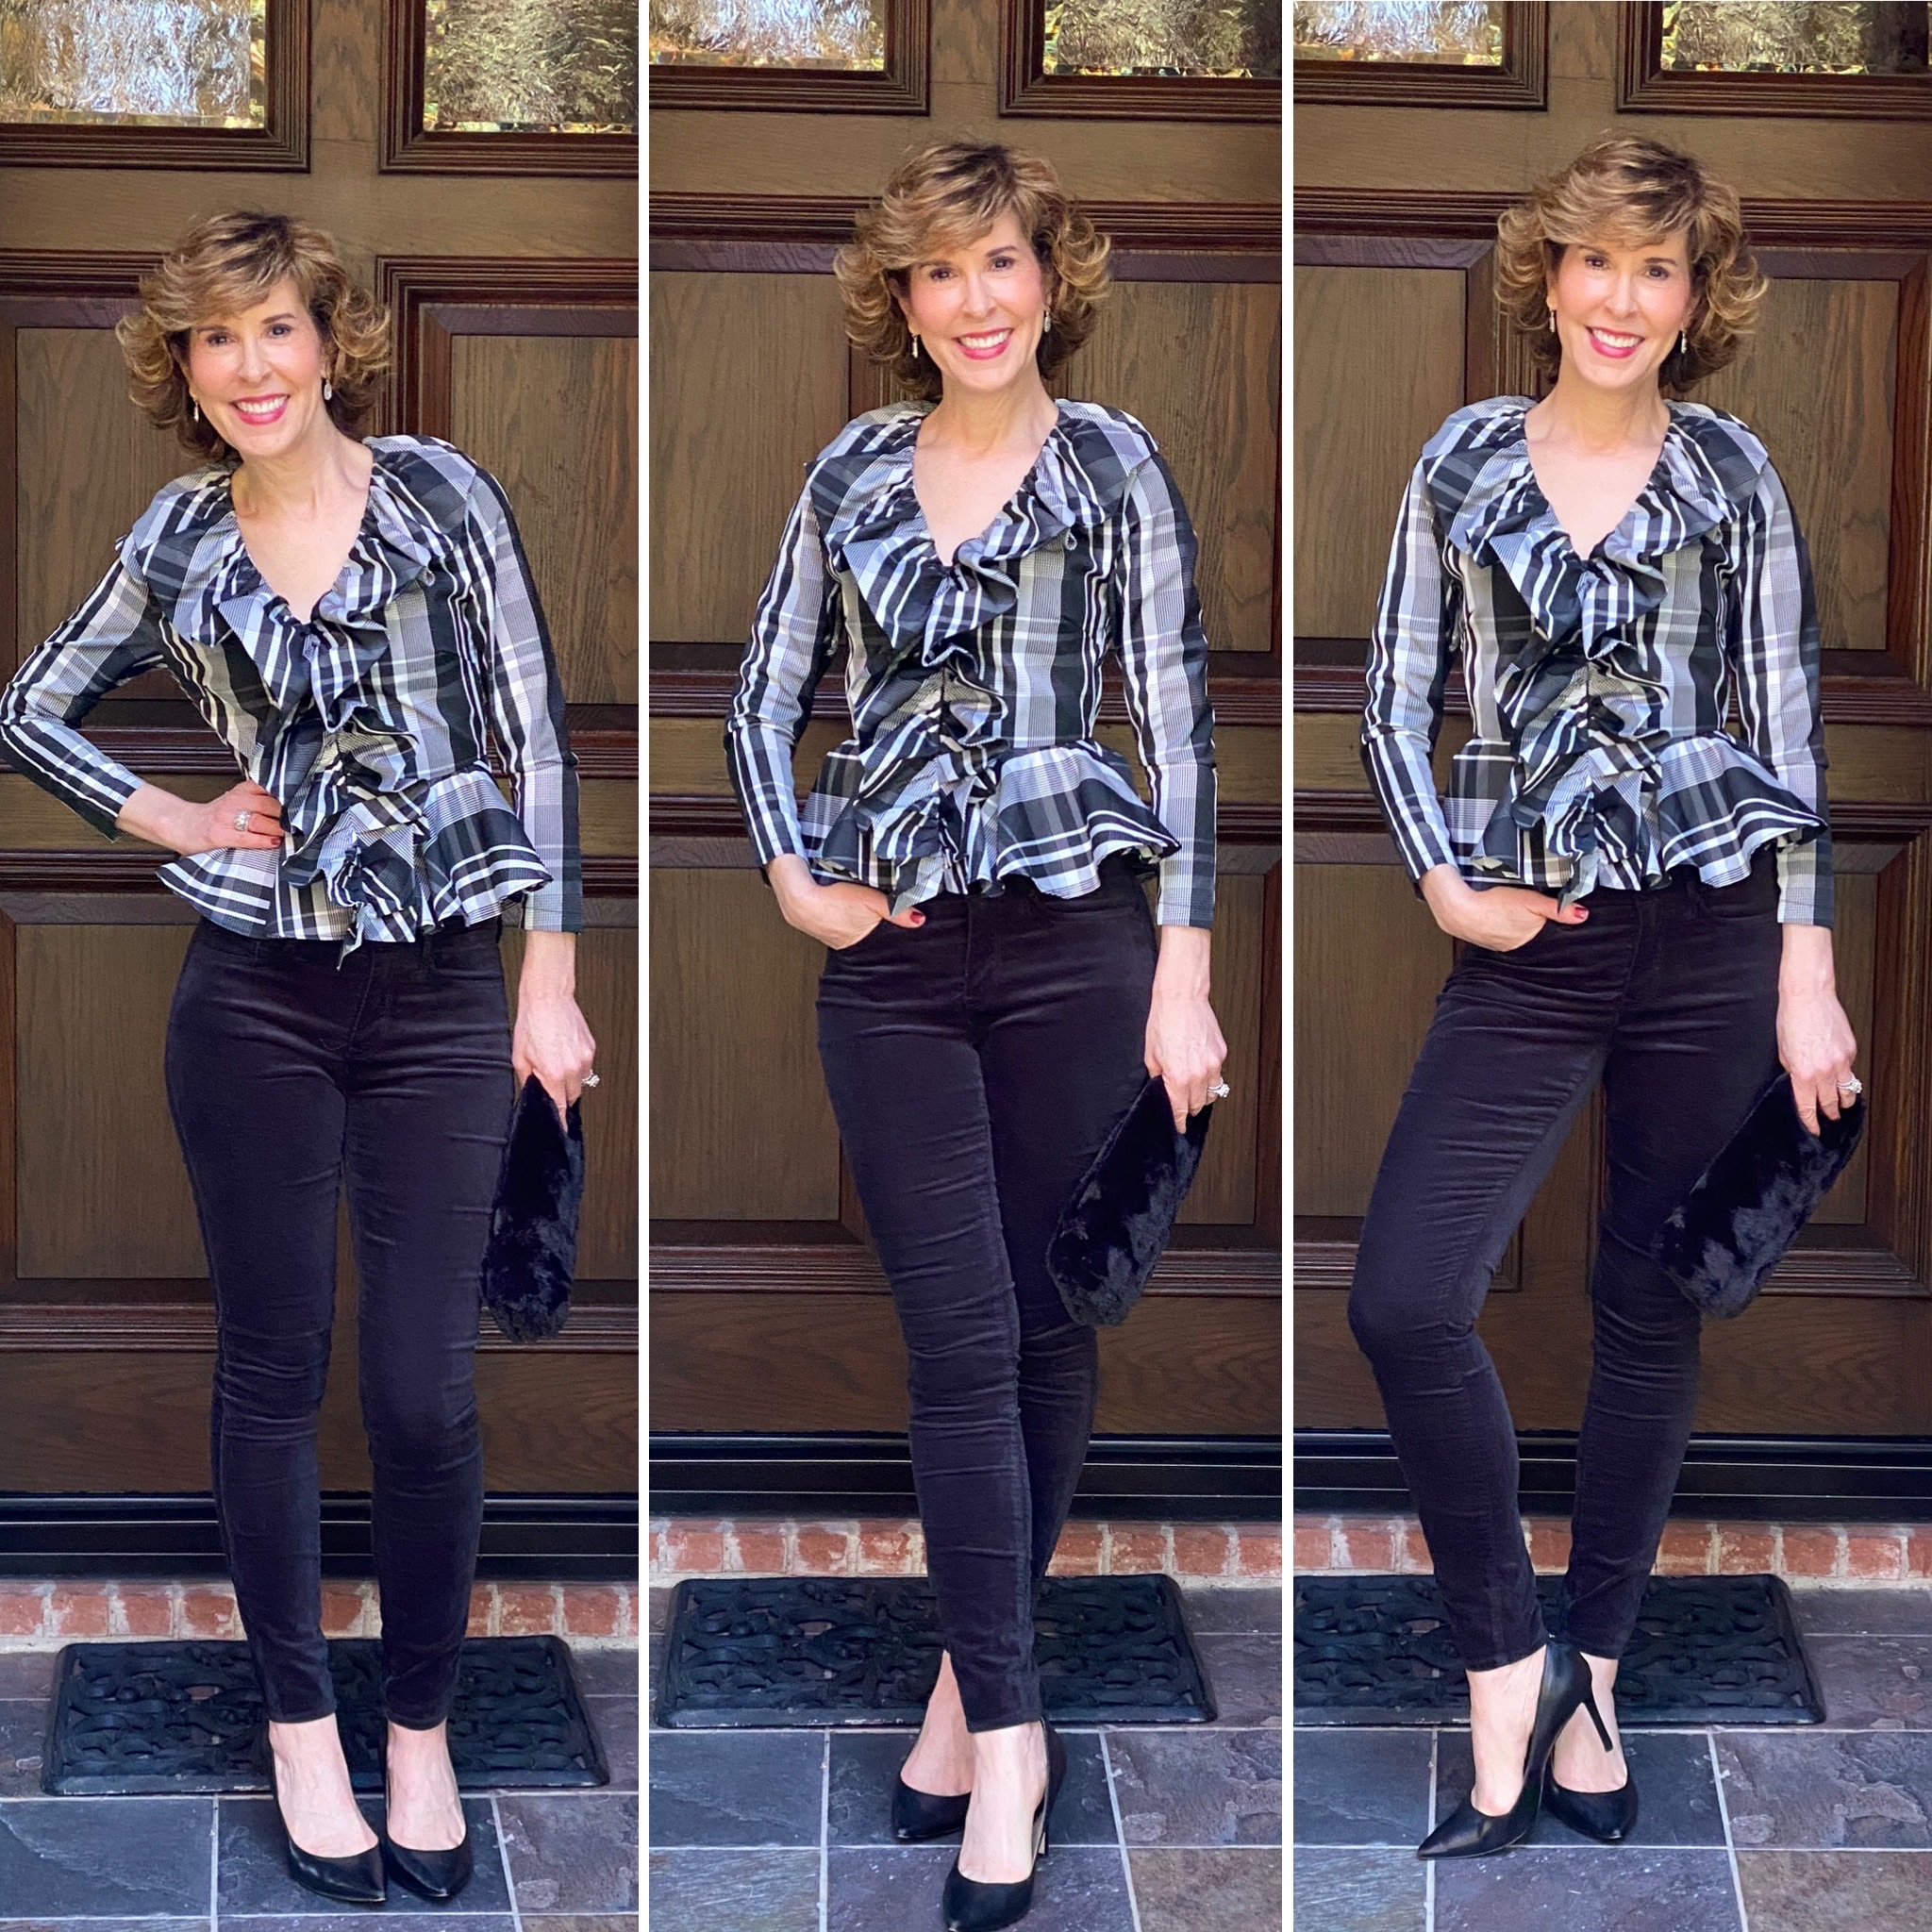 3 photo collage of woman wearing black velvet jeans and black and white plaid ruffled top holiday party look